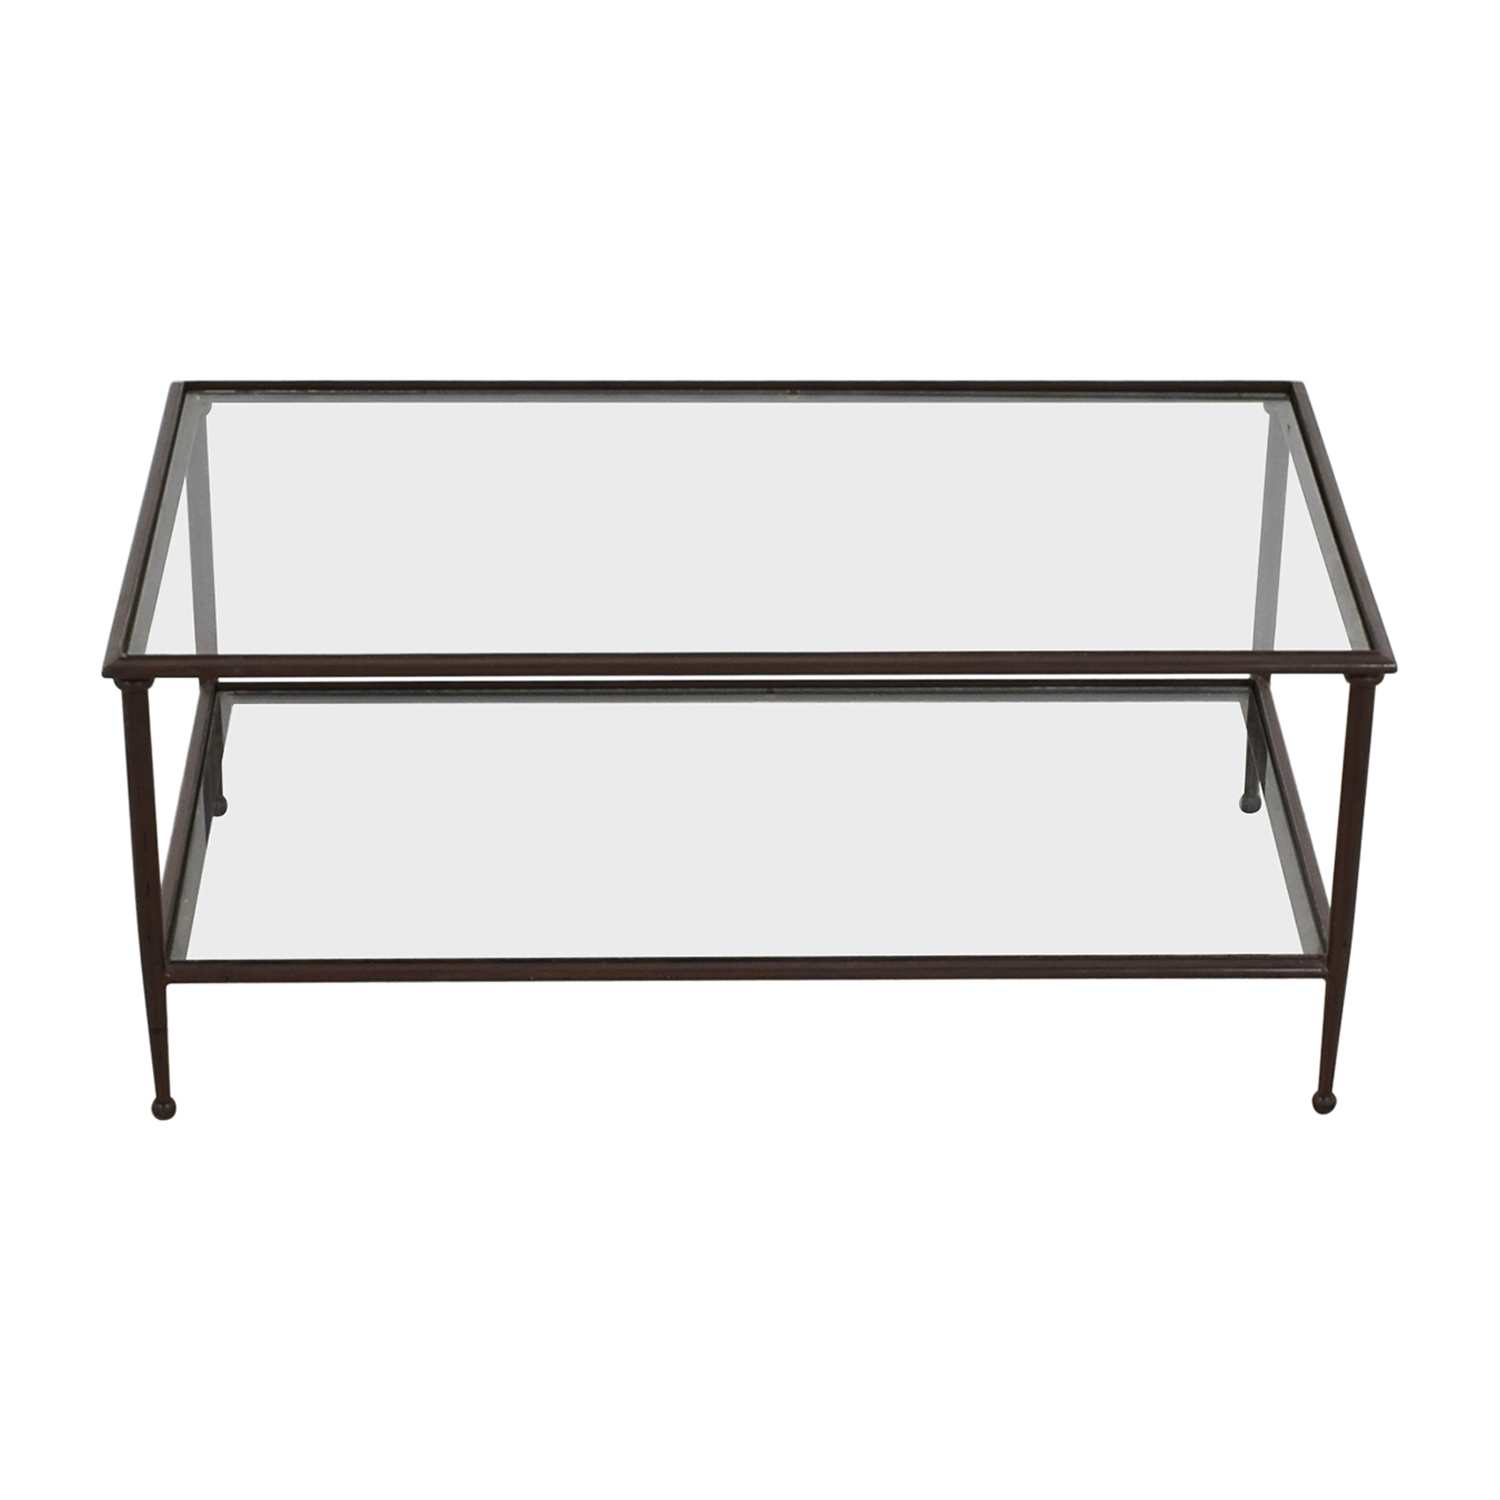 74 off crate barrel crate barrel glass metal coffee table tables